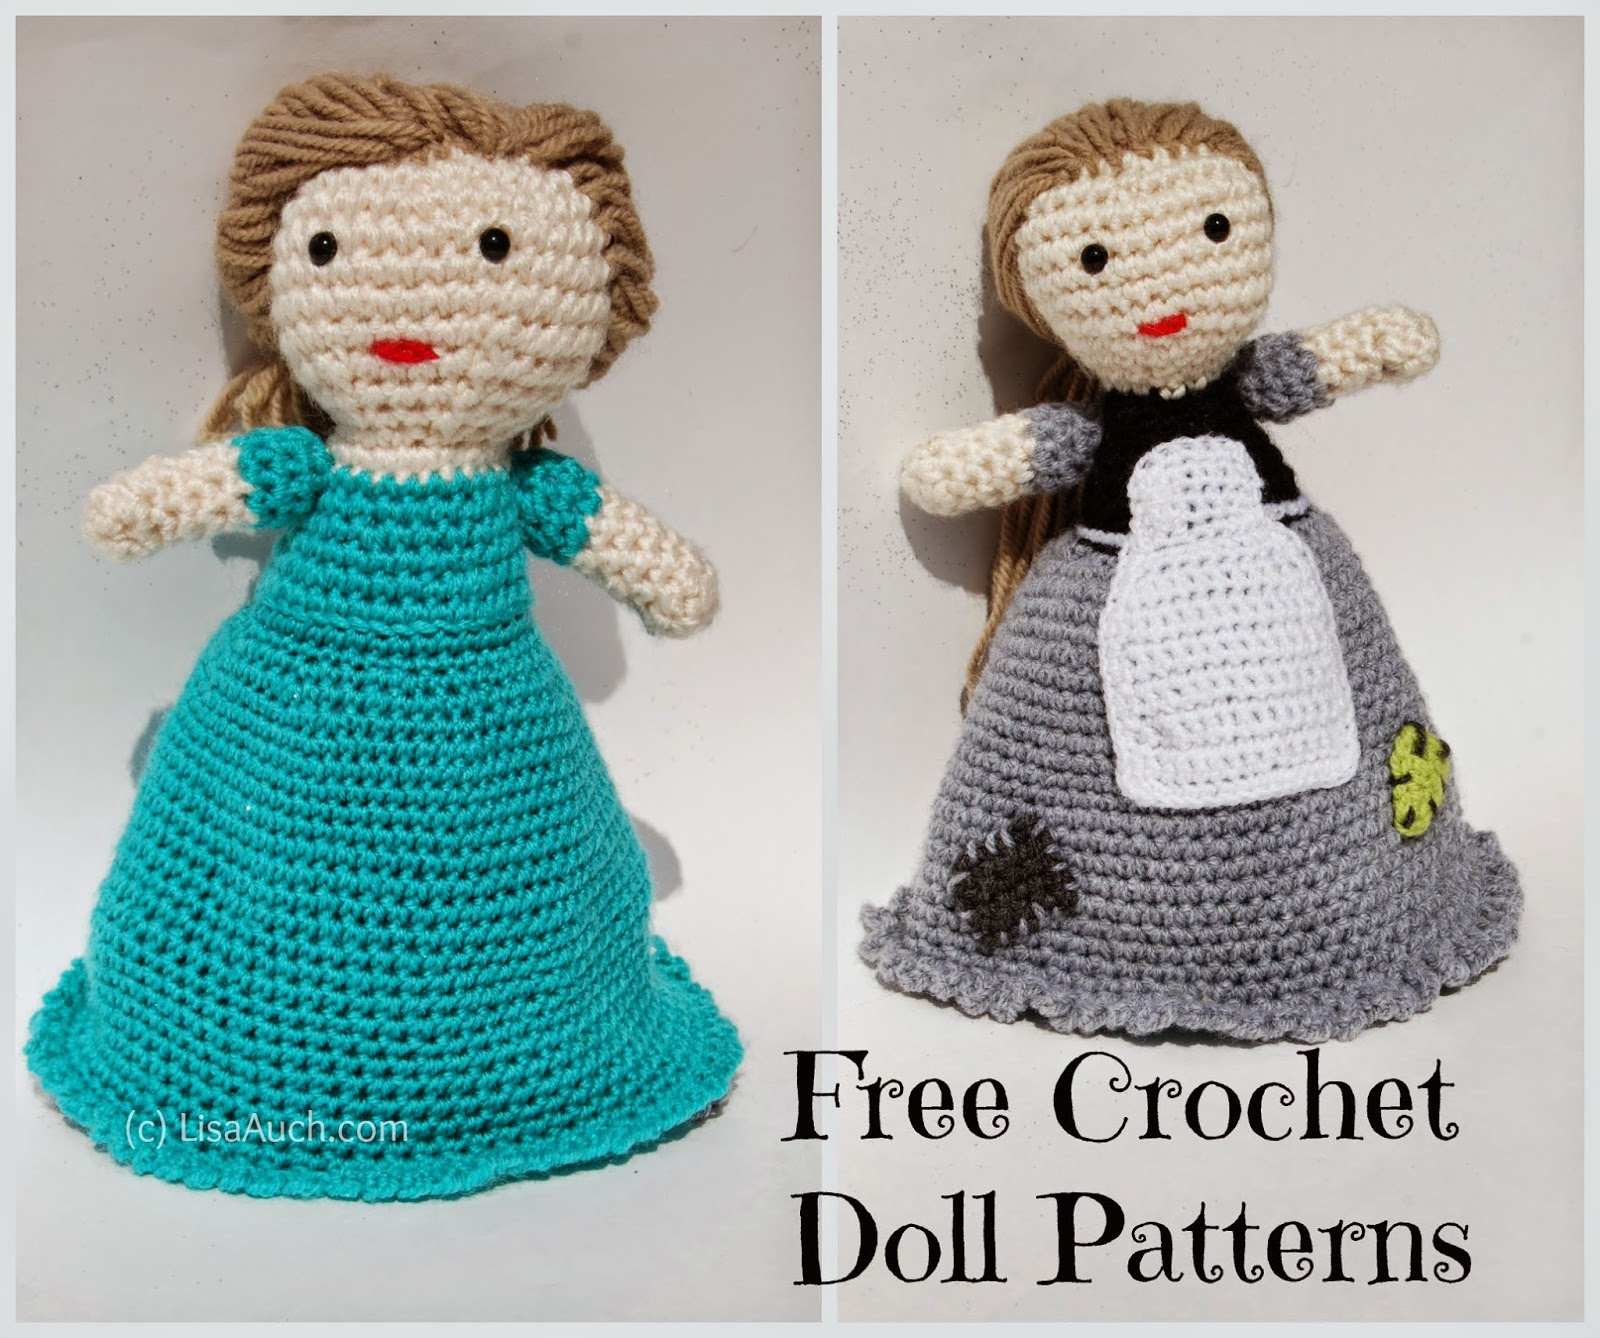 free crochet doll pattern, free crochet doll patterns, free pattern for doll crochet, free doll amigurumi crochet patterns